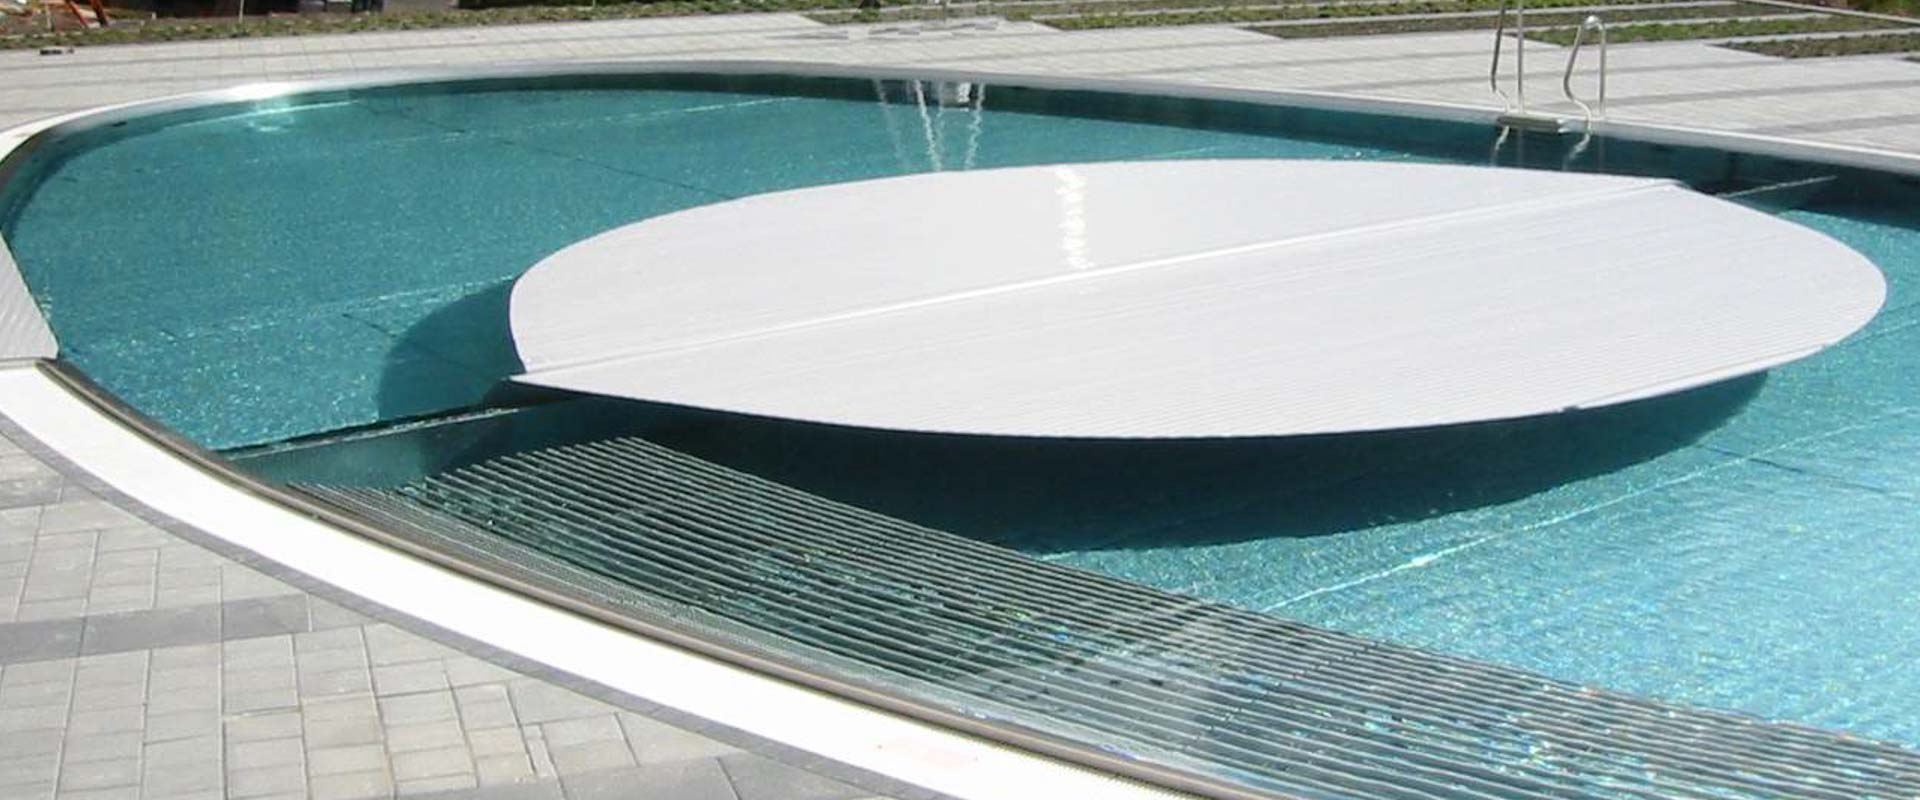 Automatic rigid pool cover system type ibs 8 grando for Automatic pool cover motor replacement